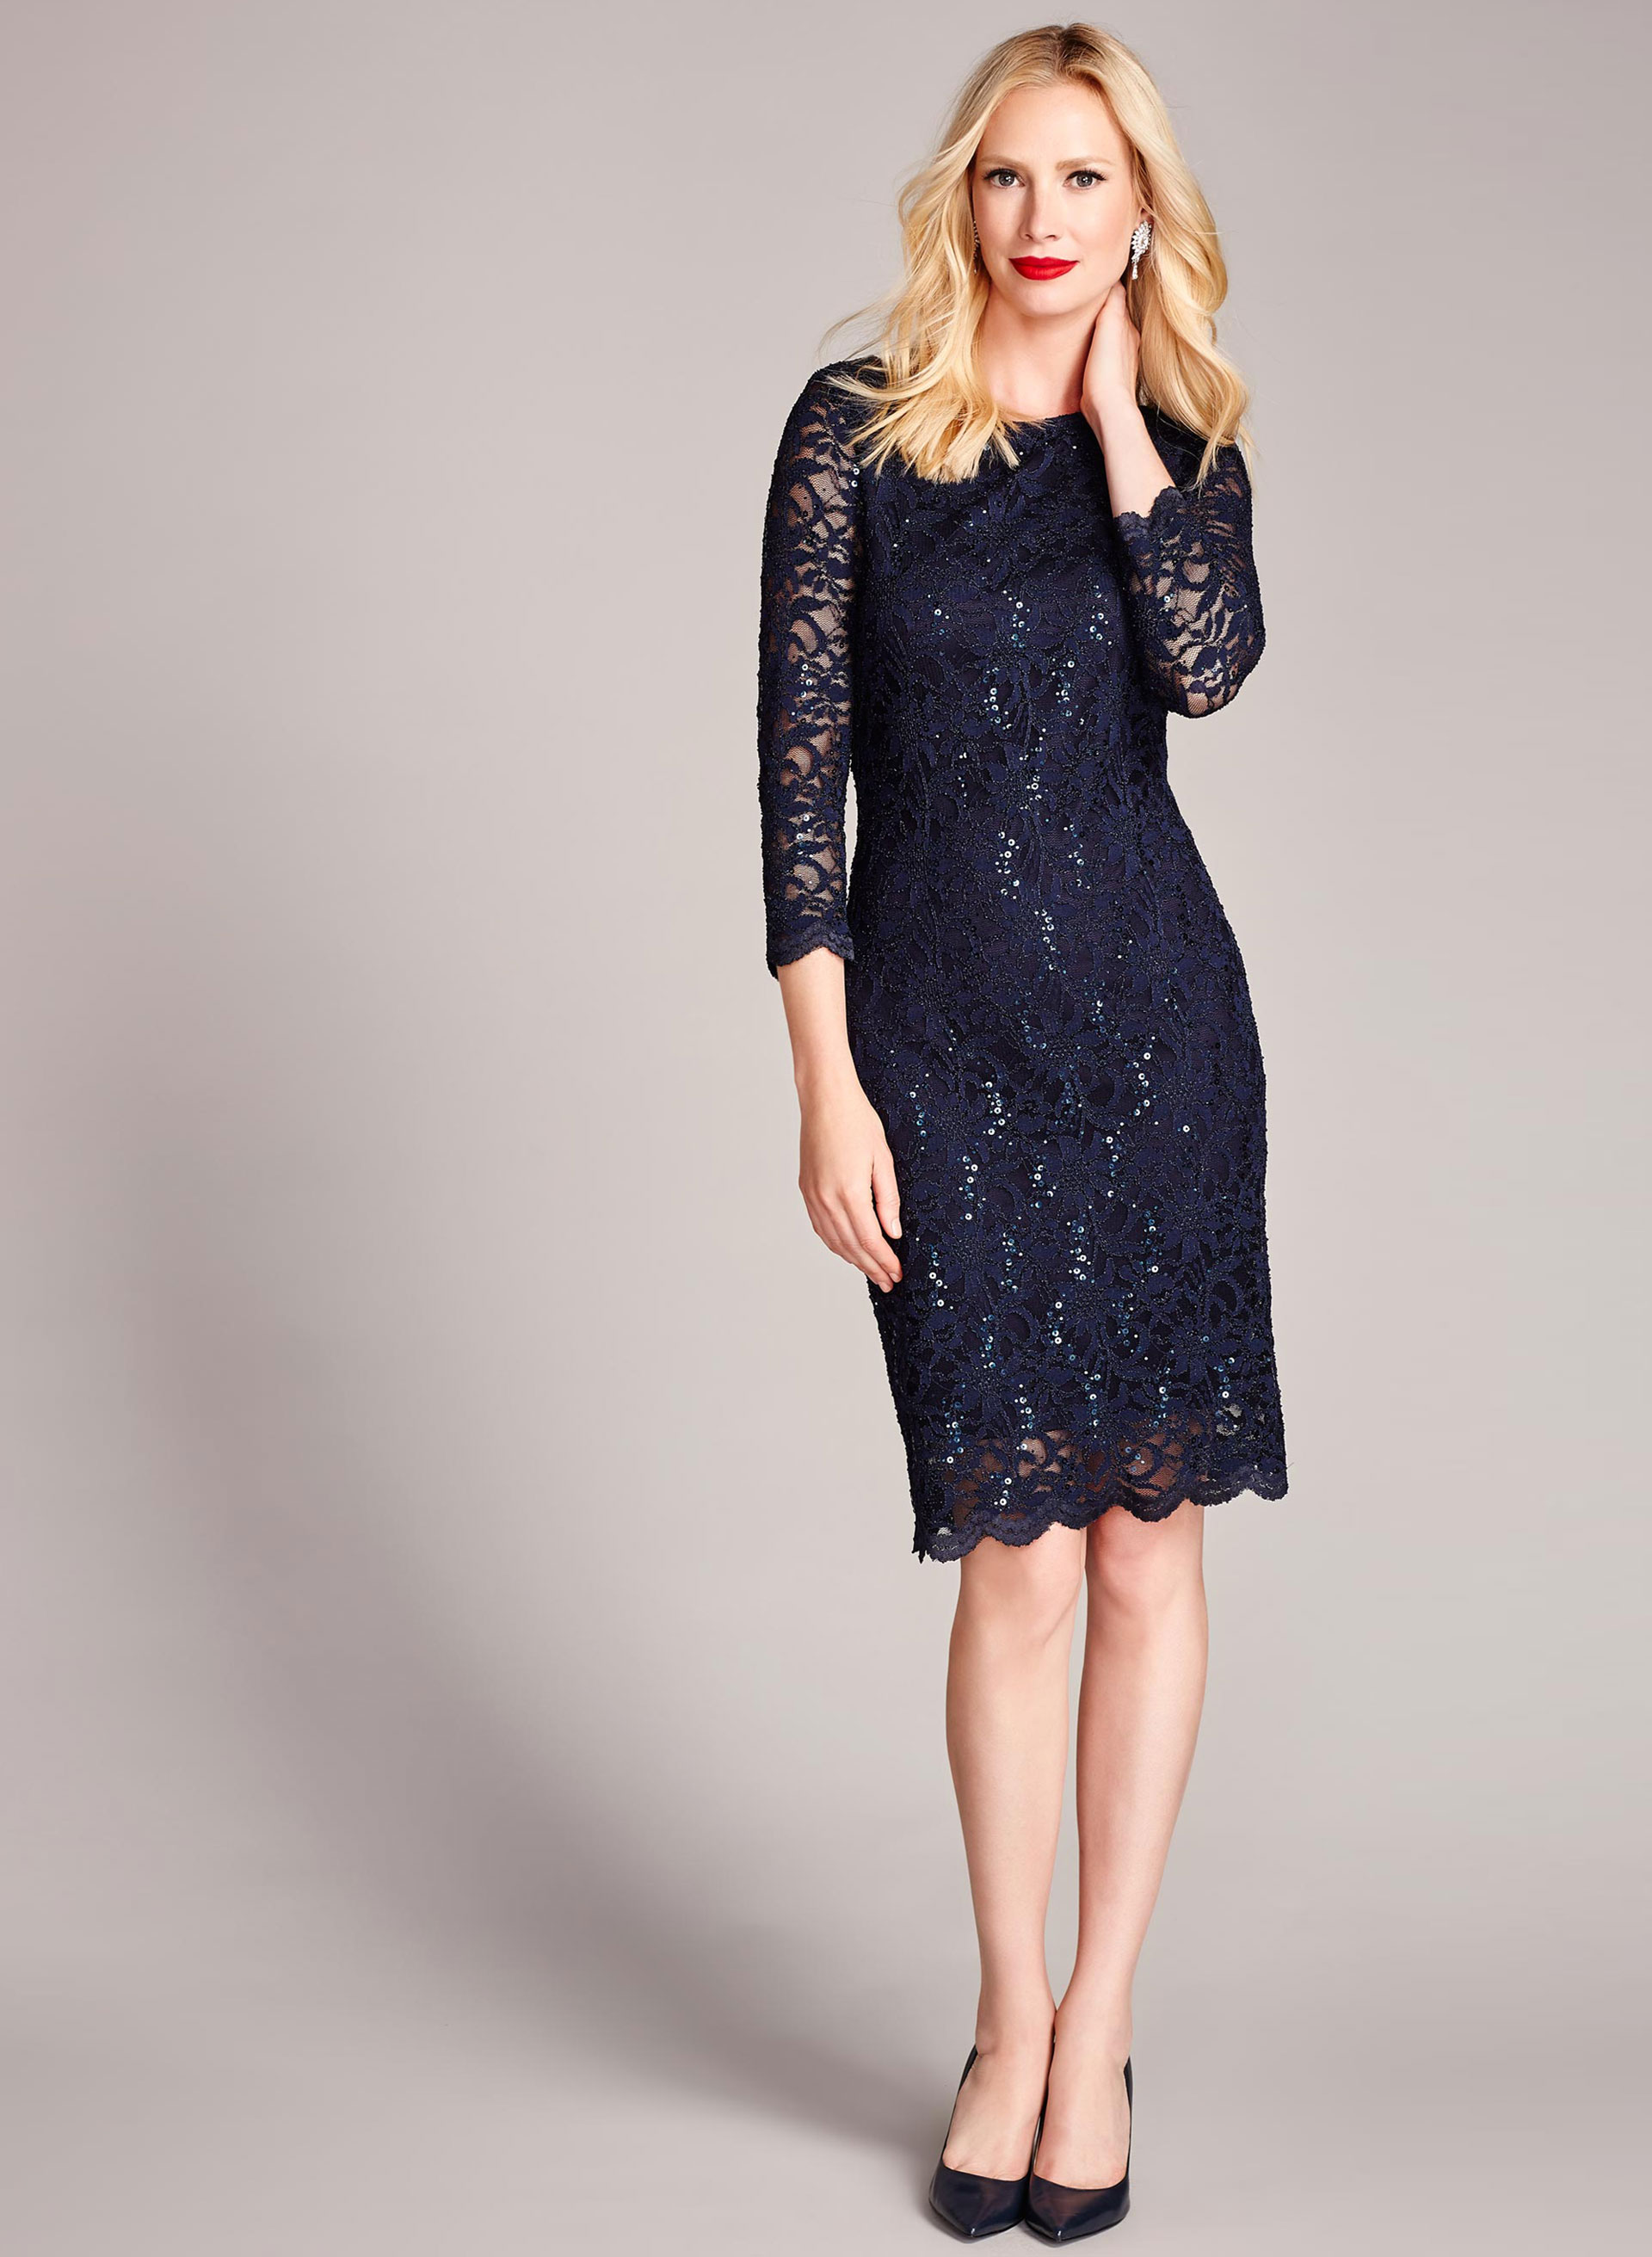 Laura clothing store dresses